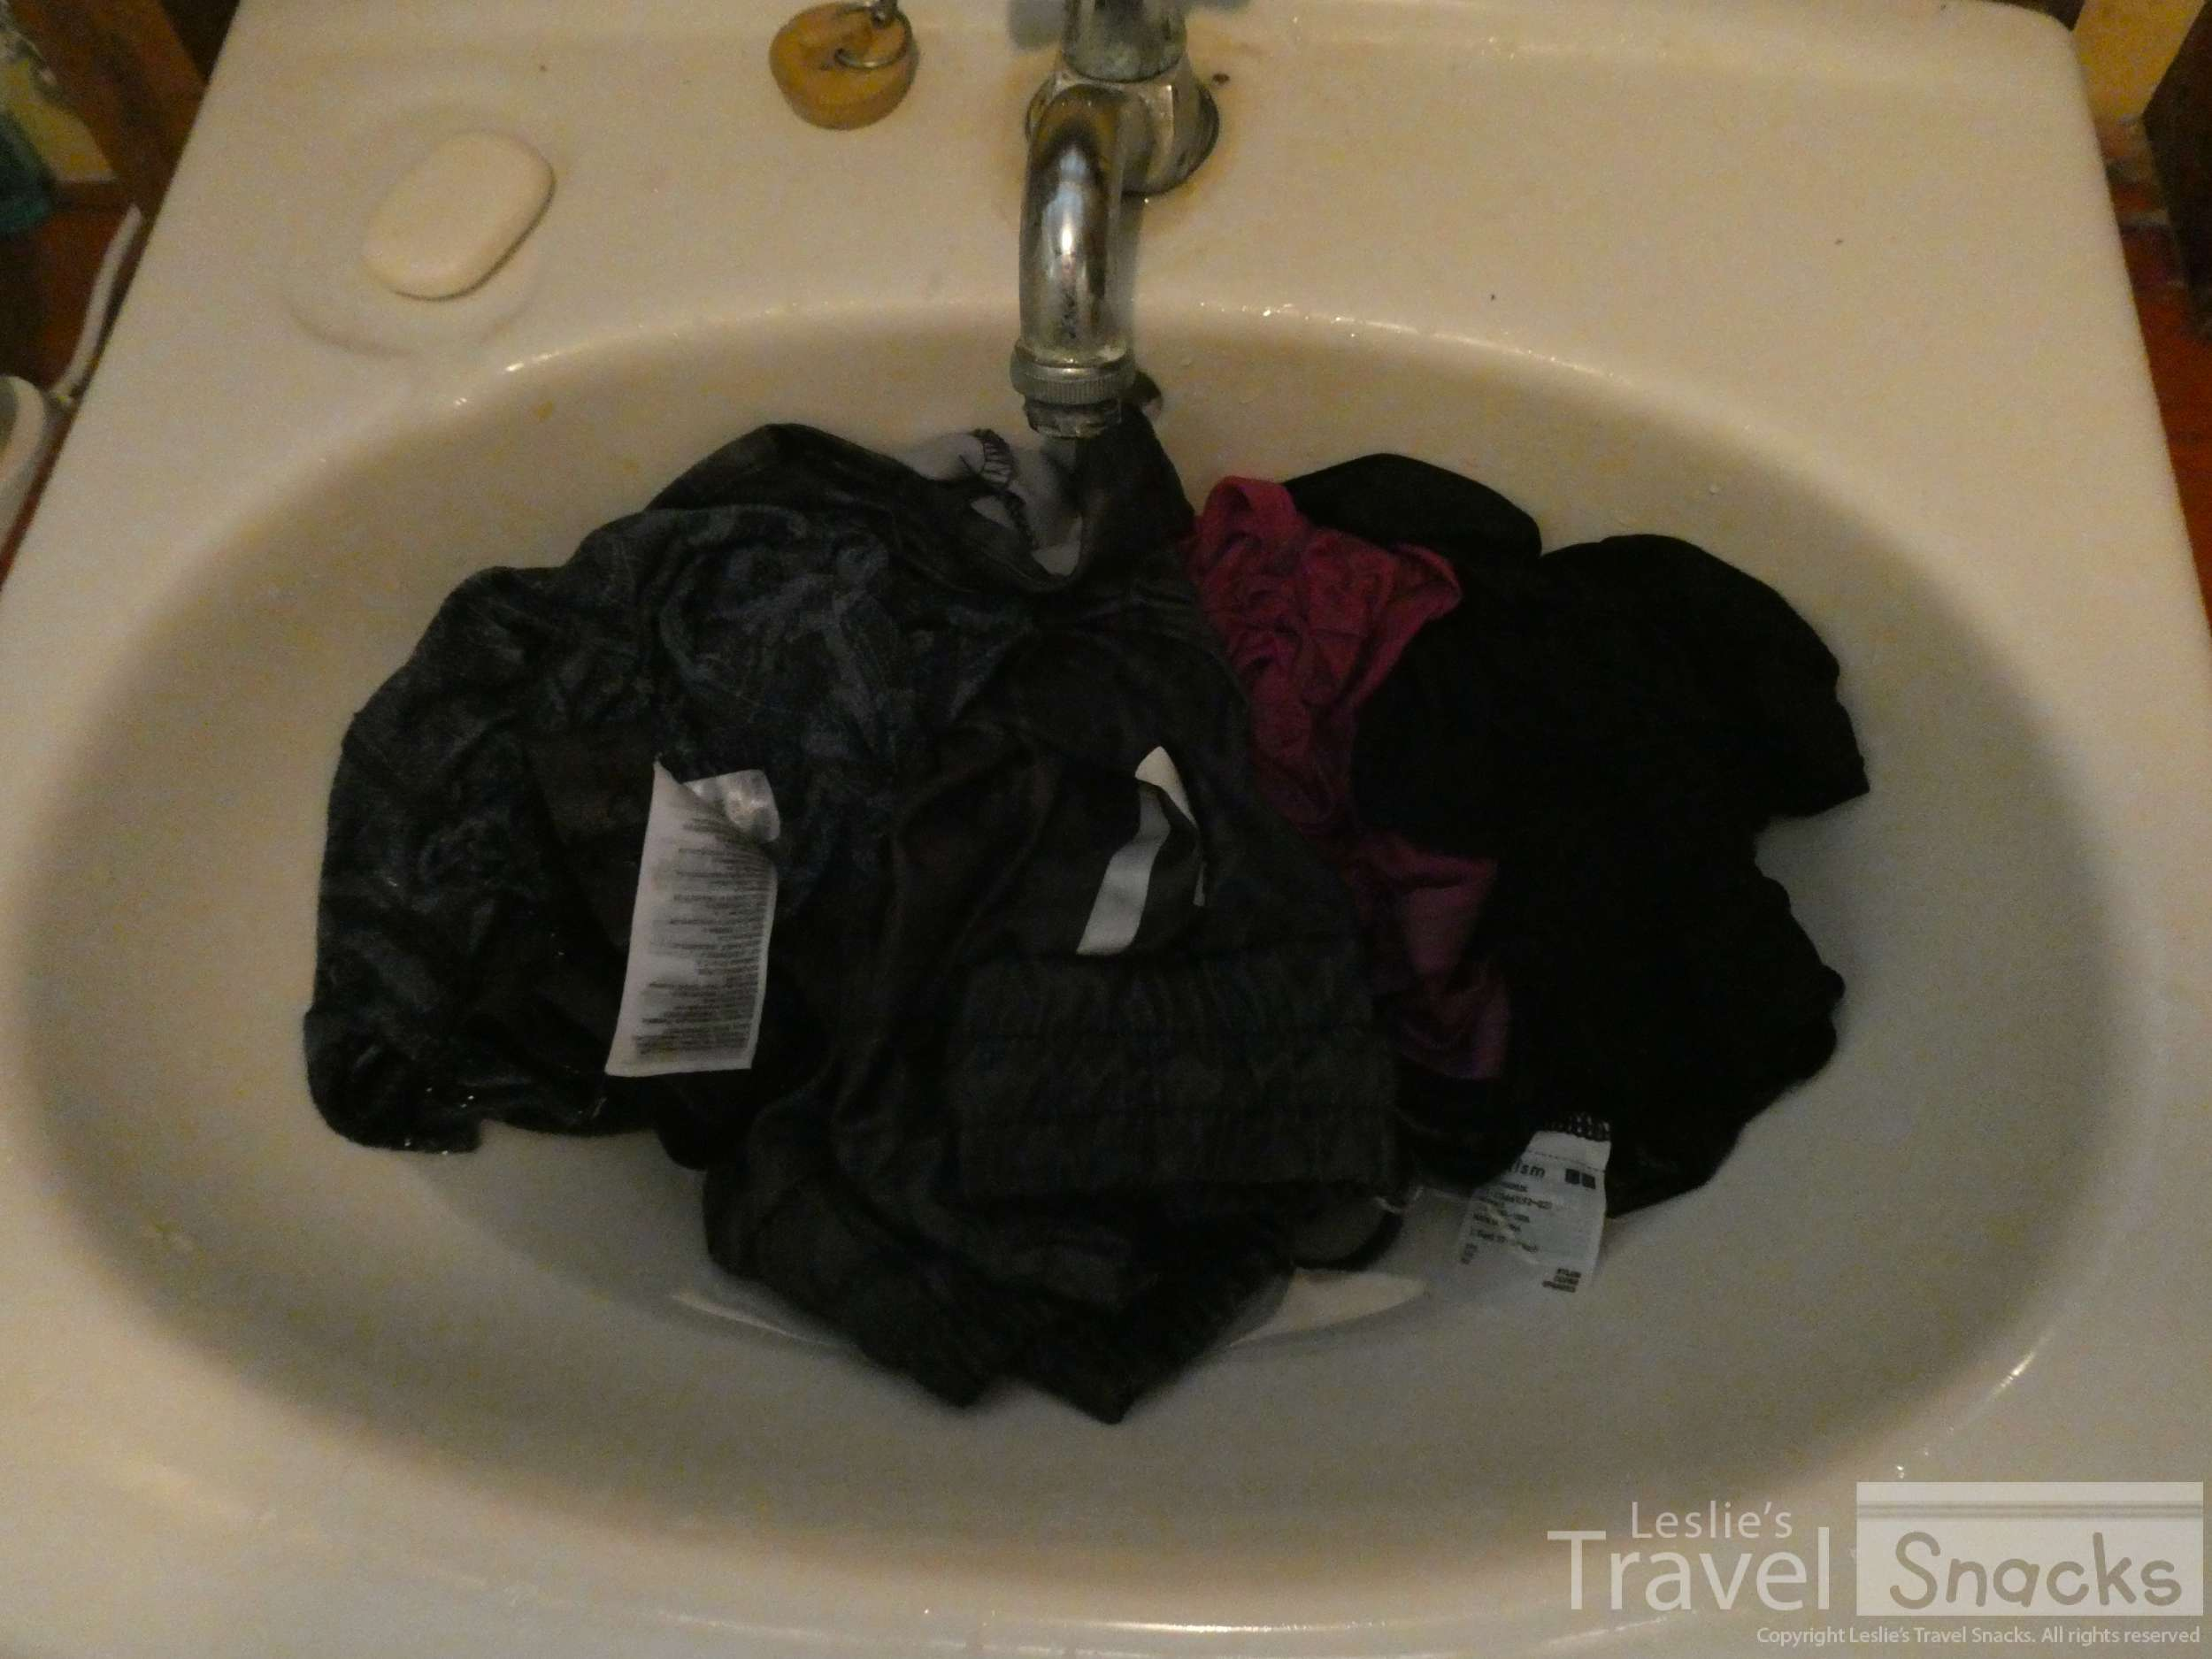 Just rinse your clothes in the sink. It's a lot less messy and more efficient.